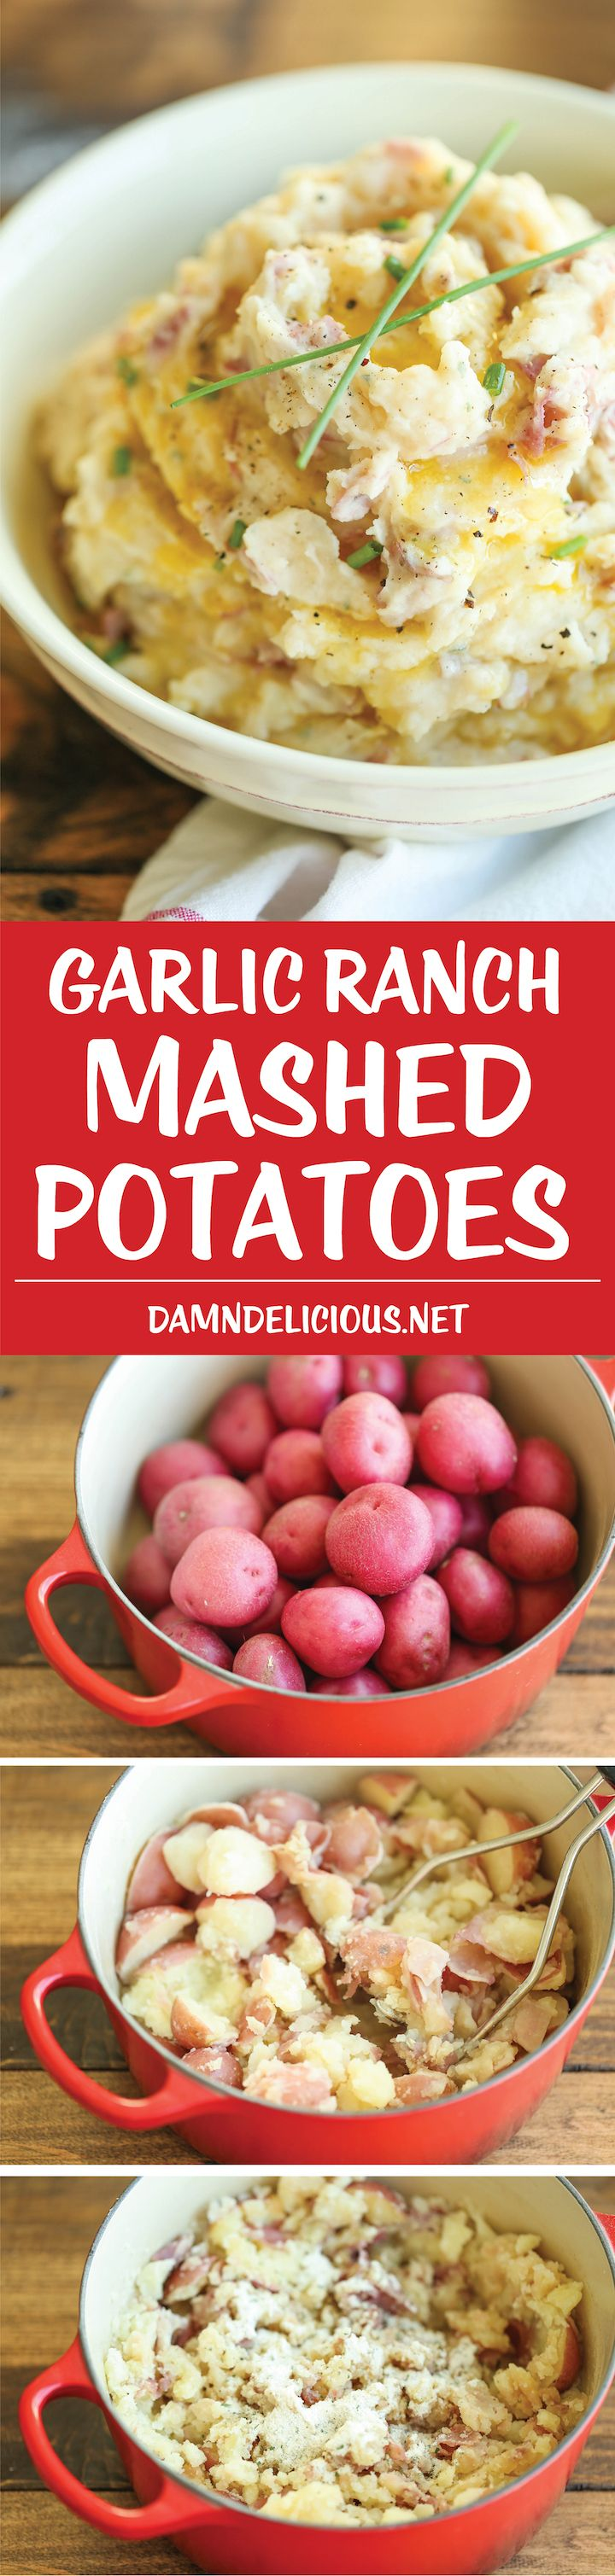 Garlic Ranch Mashed Potatoes - All you need is 5 ingredients and 10 min prep work for the BEST and EASIEST mashed potatoes ever! A must for the holidays!